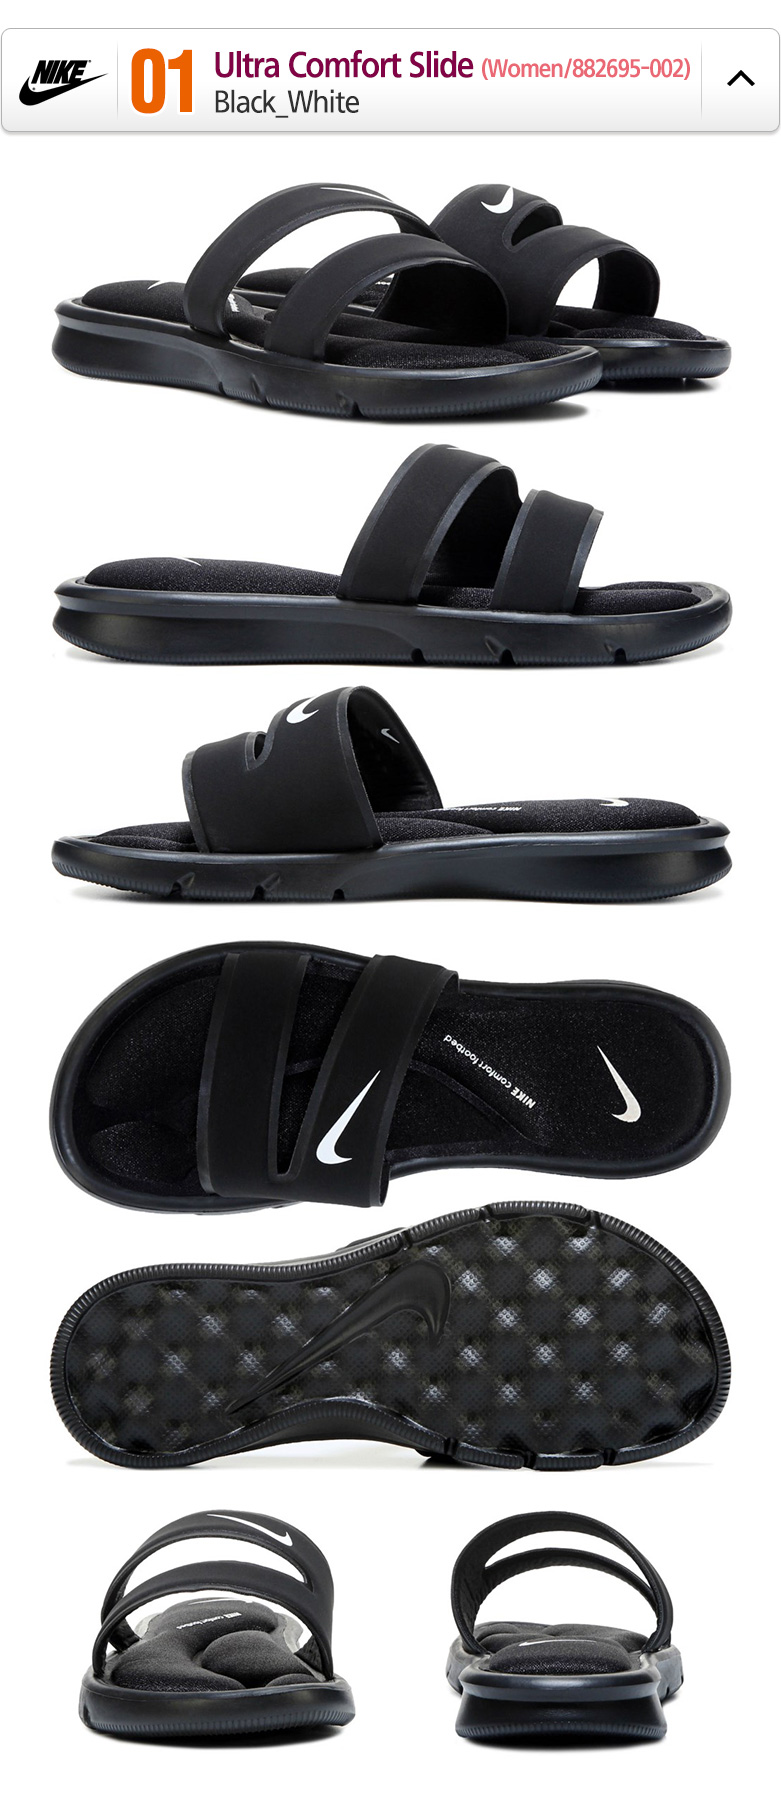 5be71d92097 52 Nike Slides Adidas Under Armour Sandals Men Women s - 11STREET